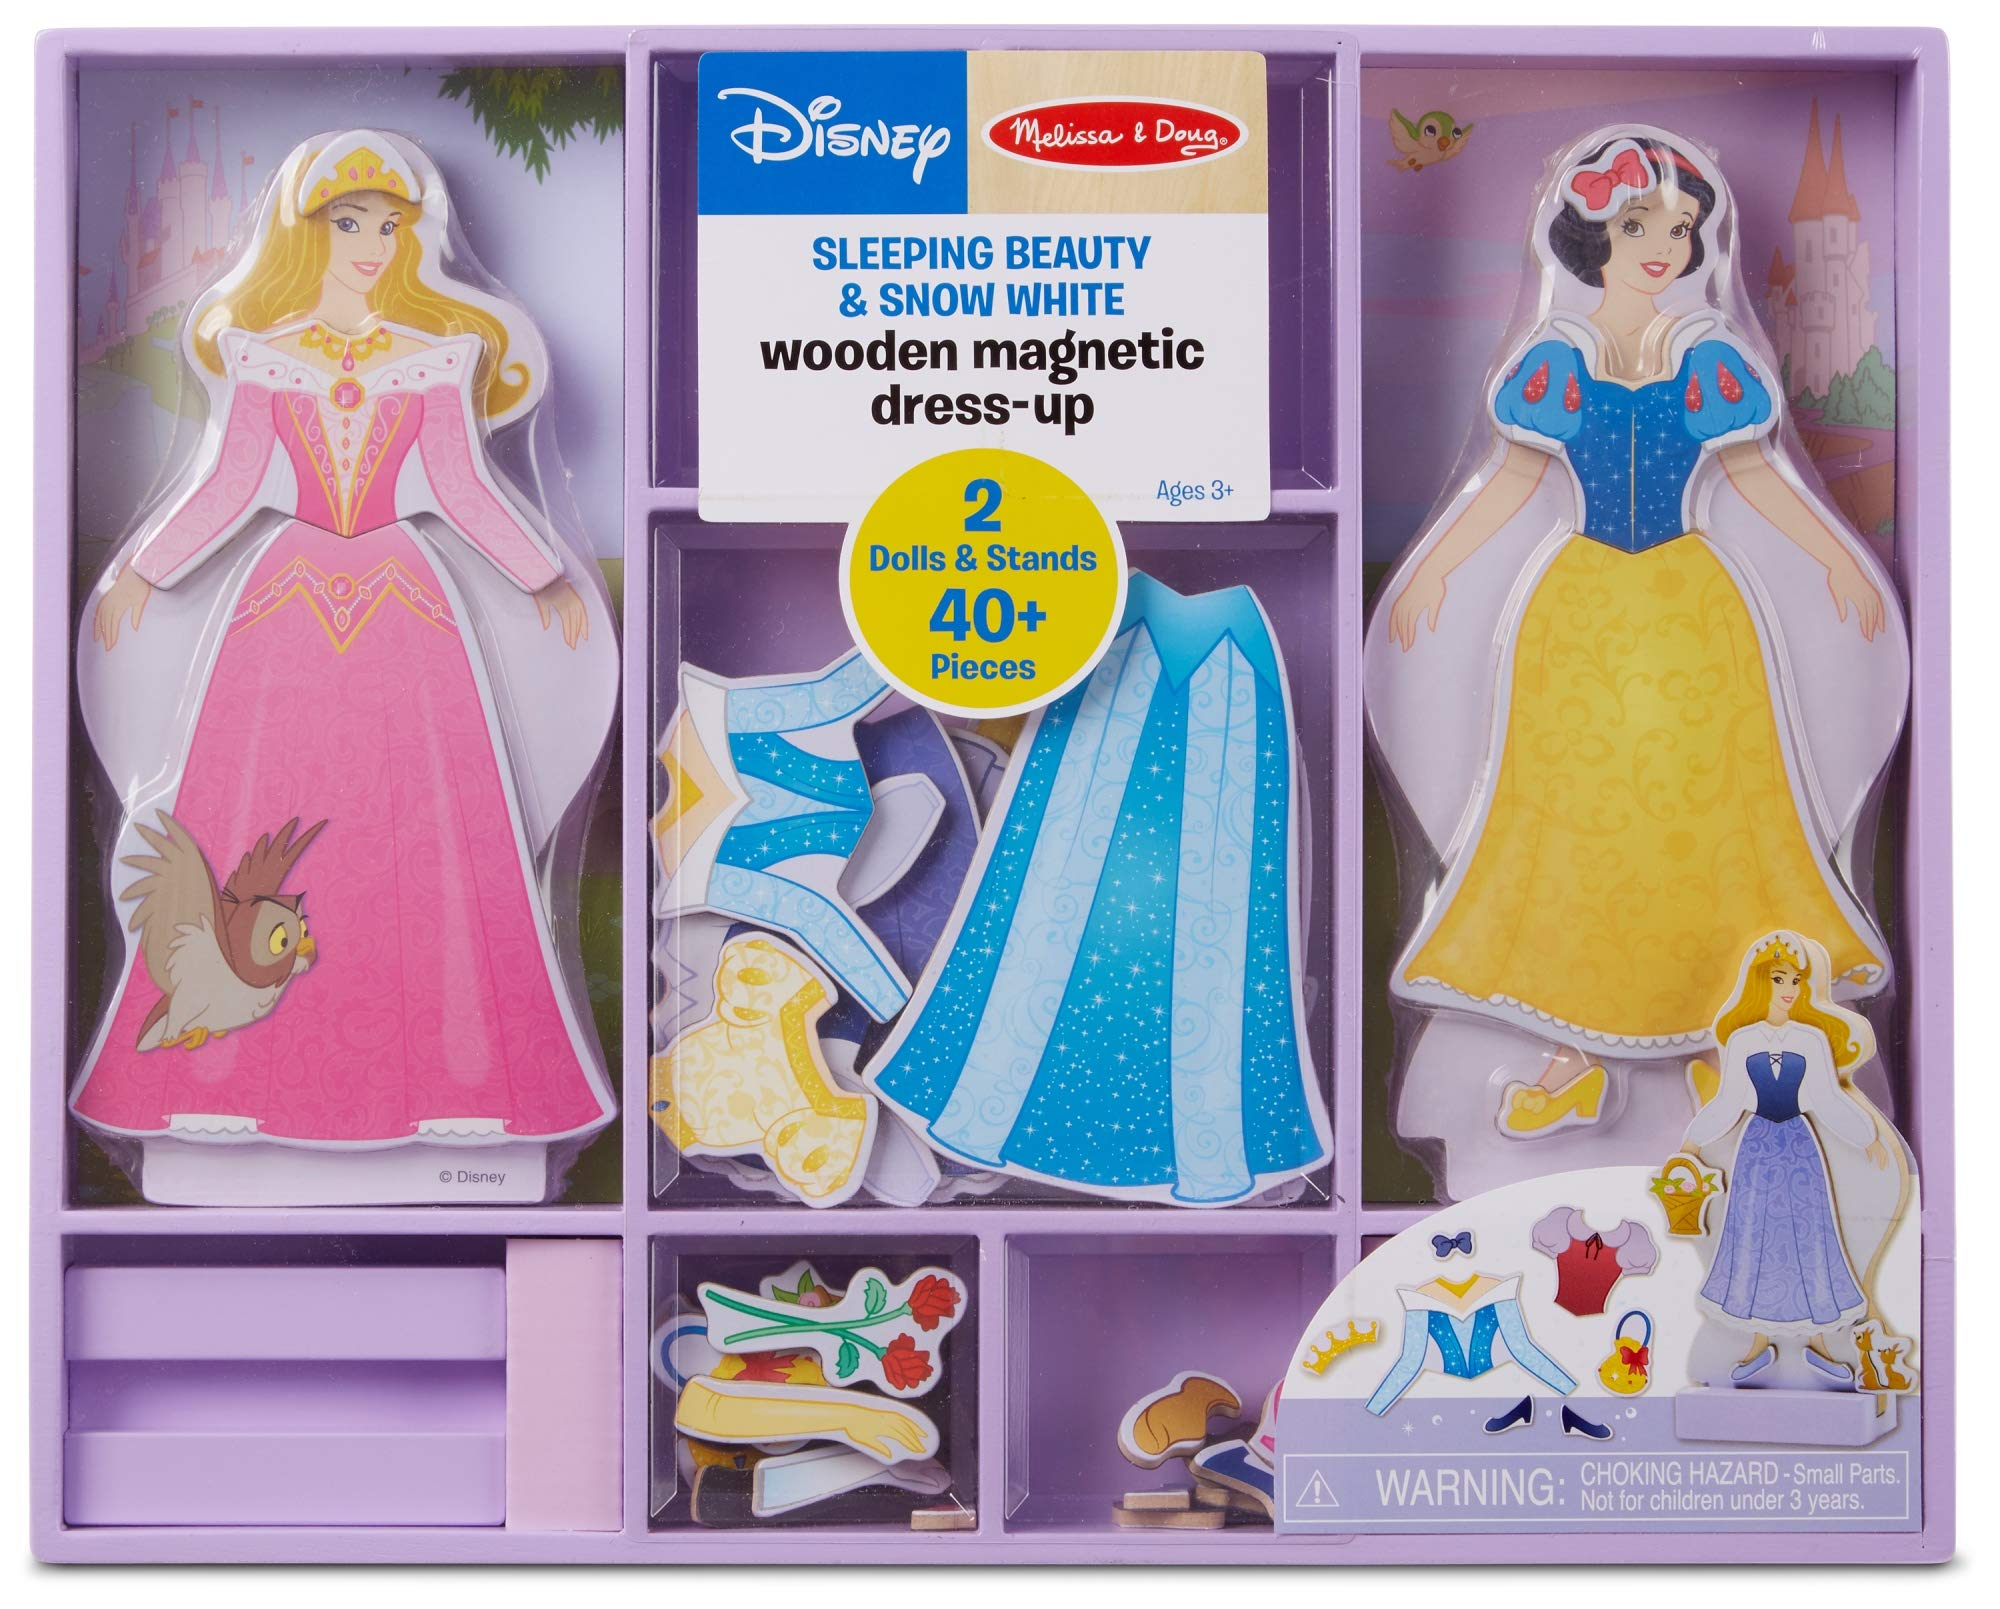 Melissa & Doug Disney Sleeping Beauty and Snow White Magnetic Dress-Up Wooden Doll Pretend Play Set (40+ pcs) by Melissa & Doug